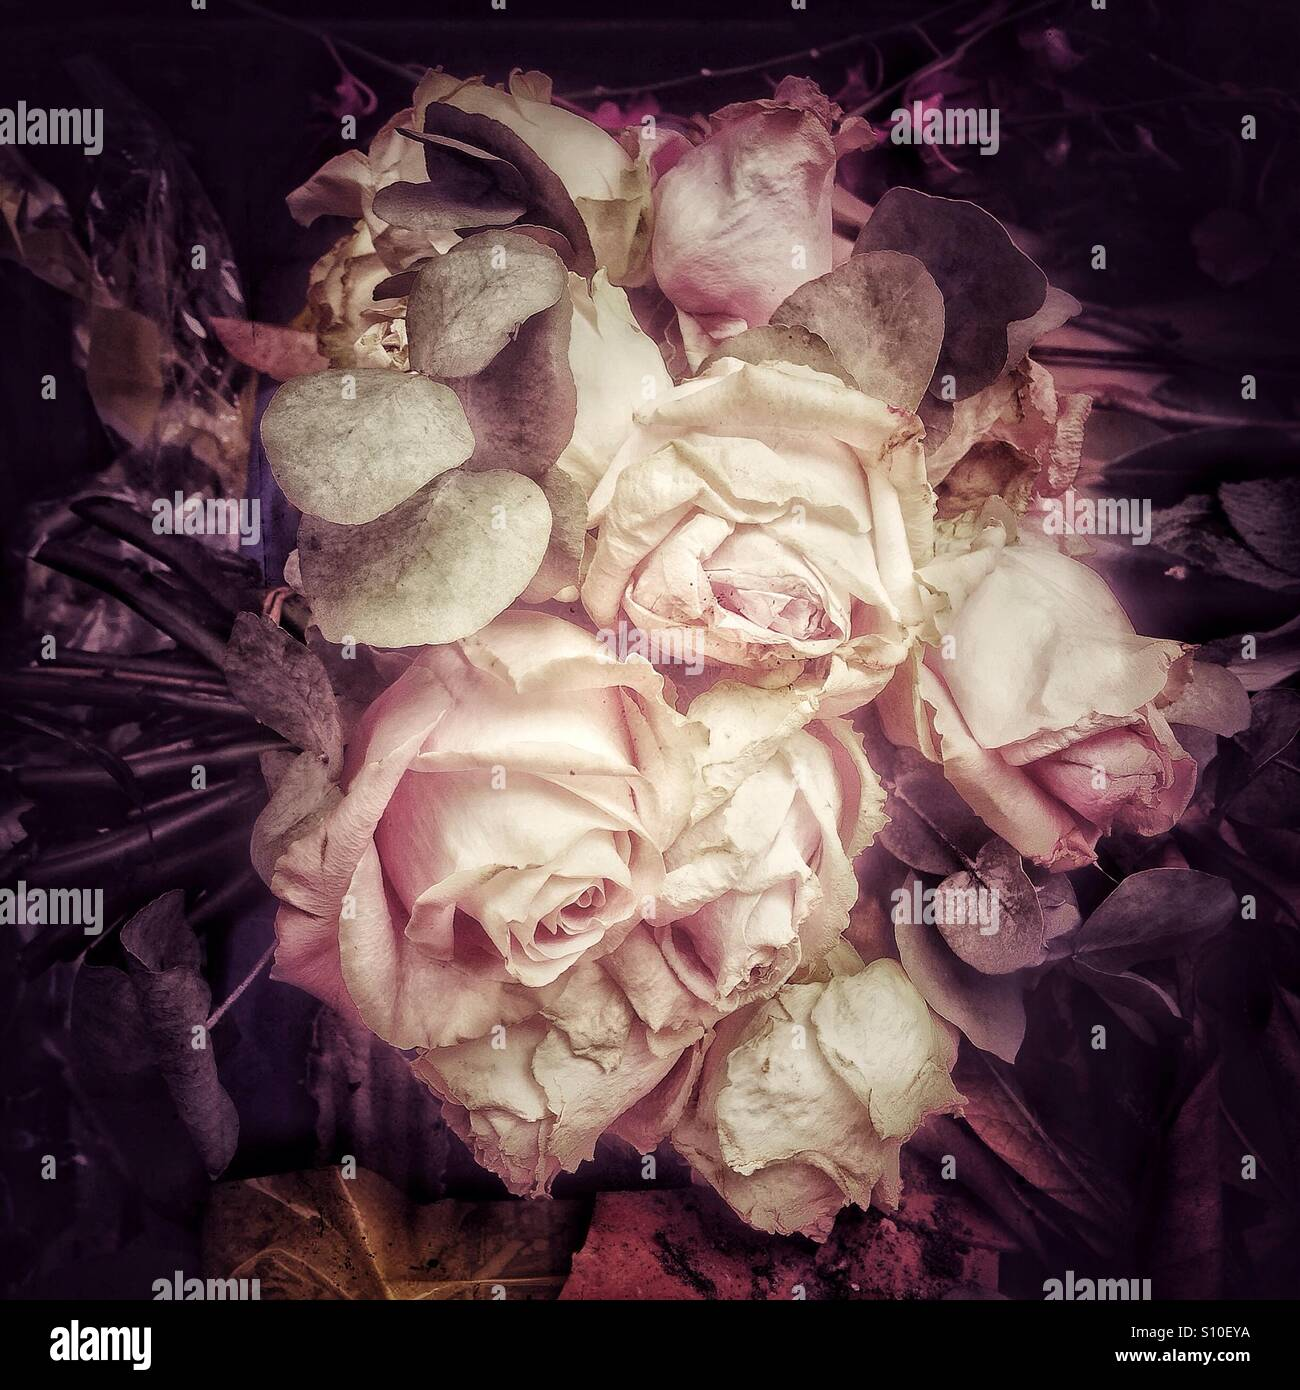 Dead roses in a painterly style - Stock Image